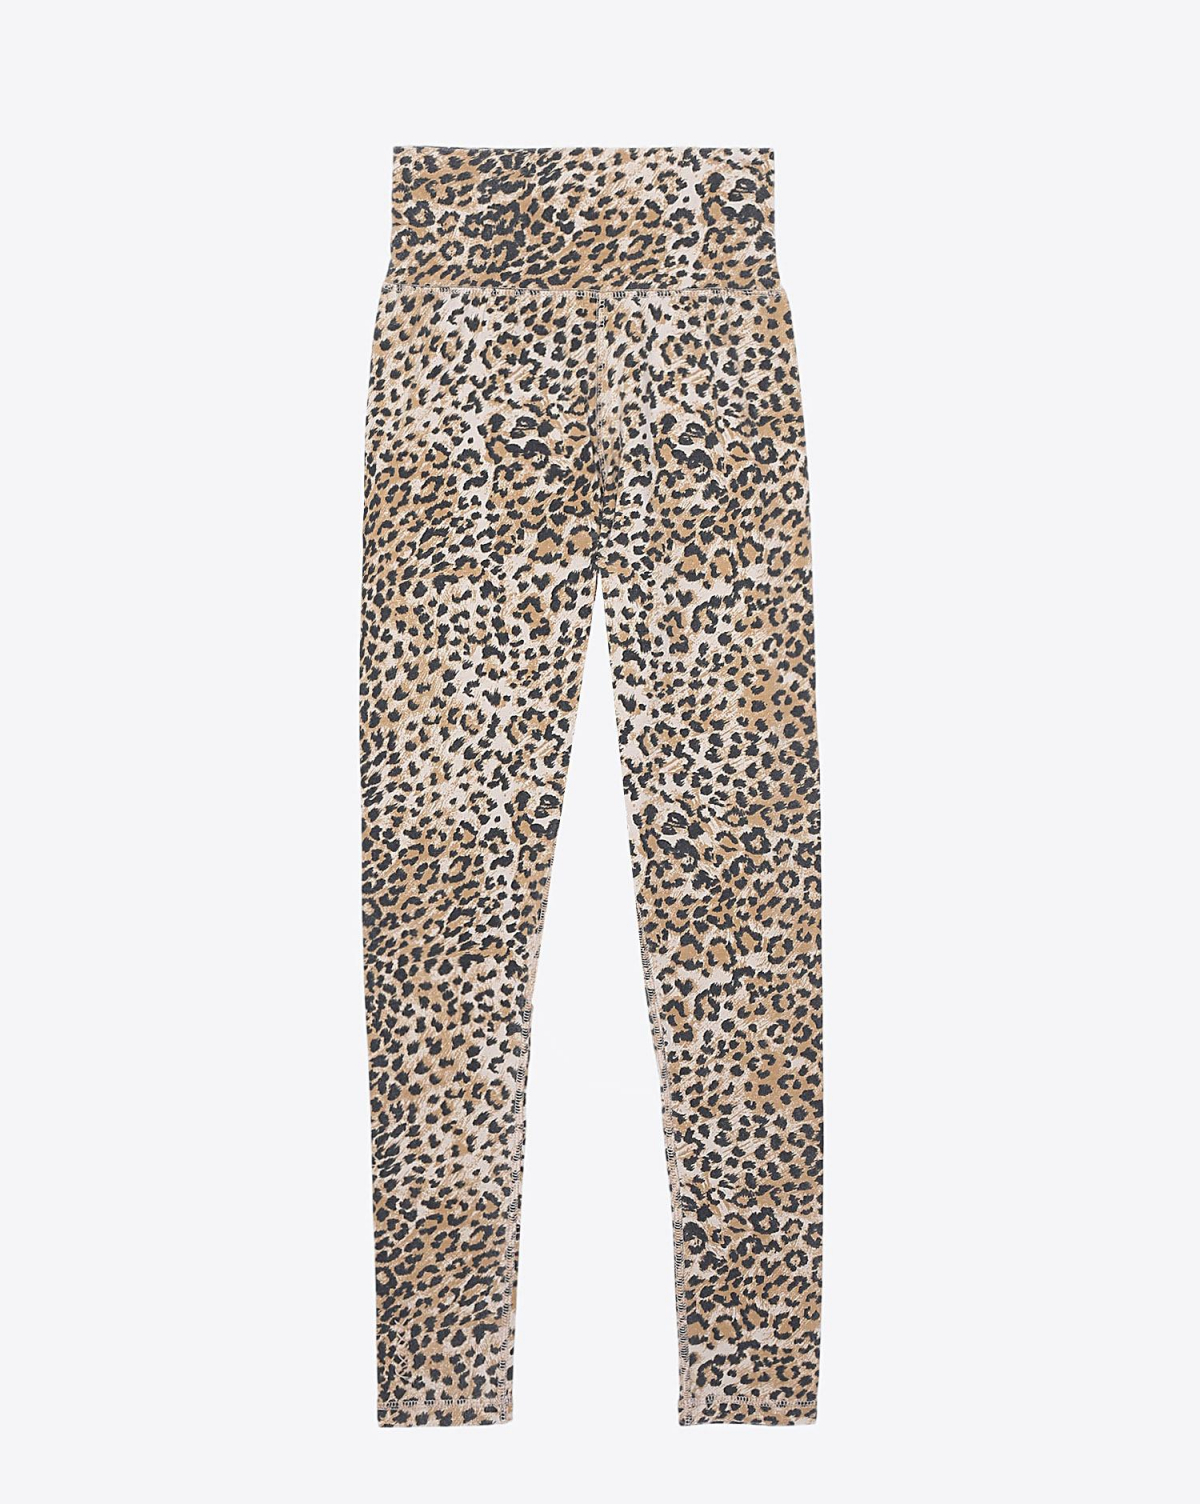 Ragdoll LA Leggings Brown Leopard